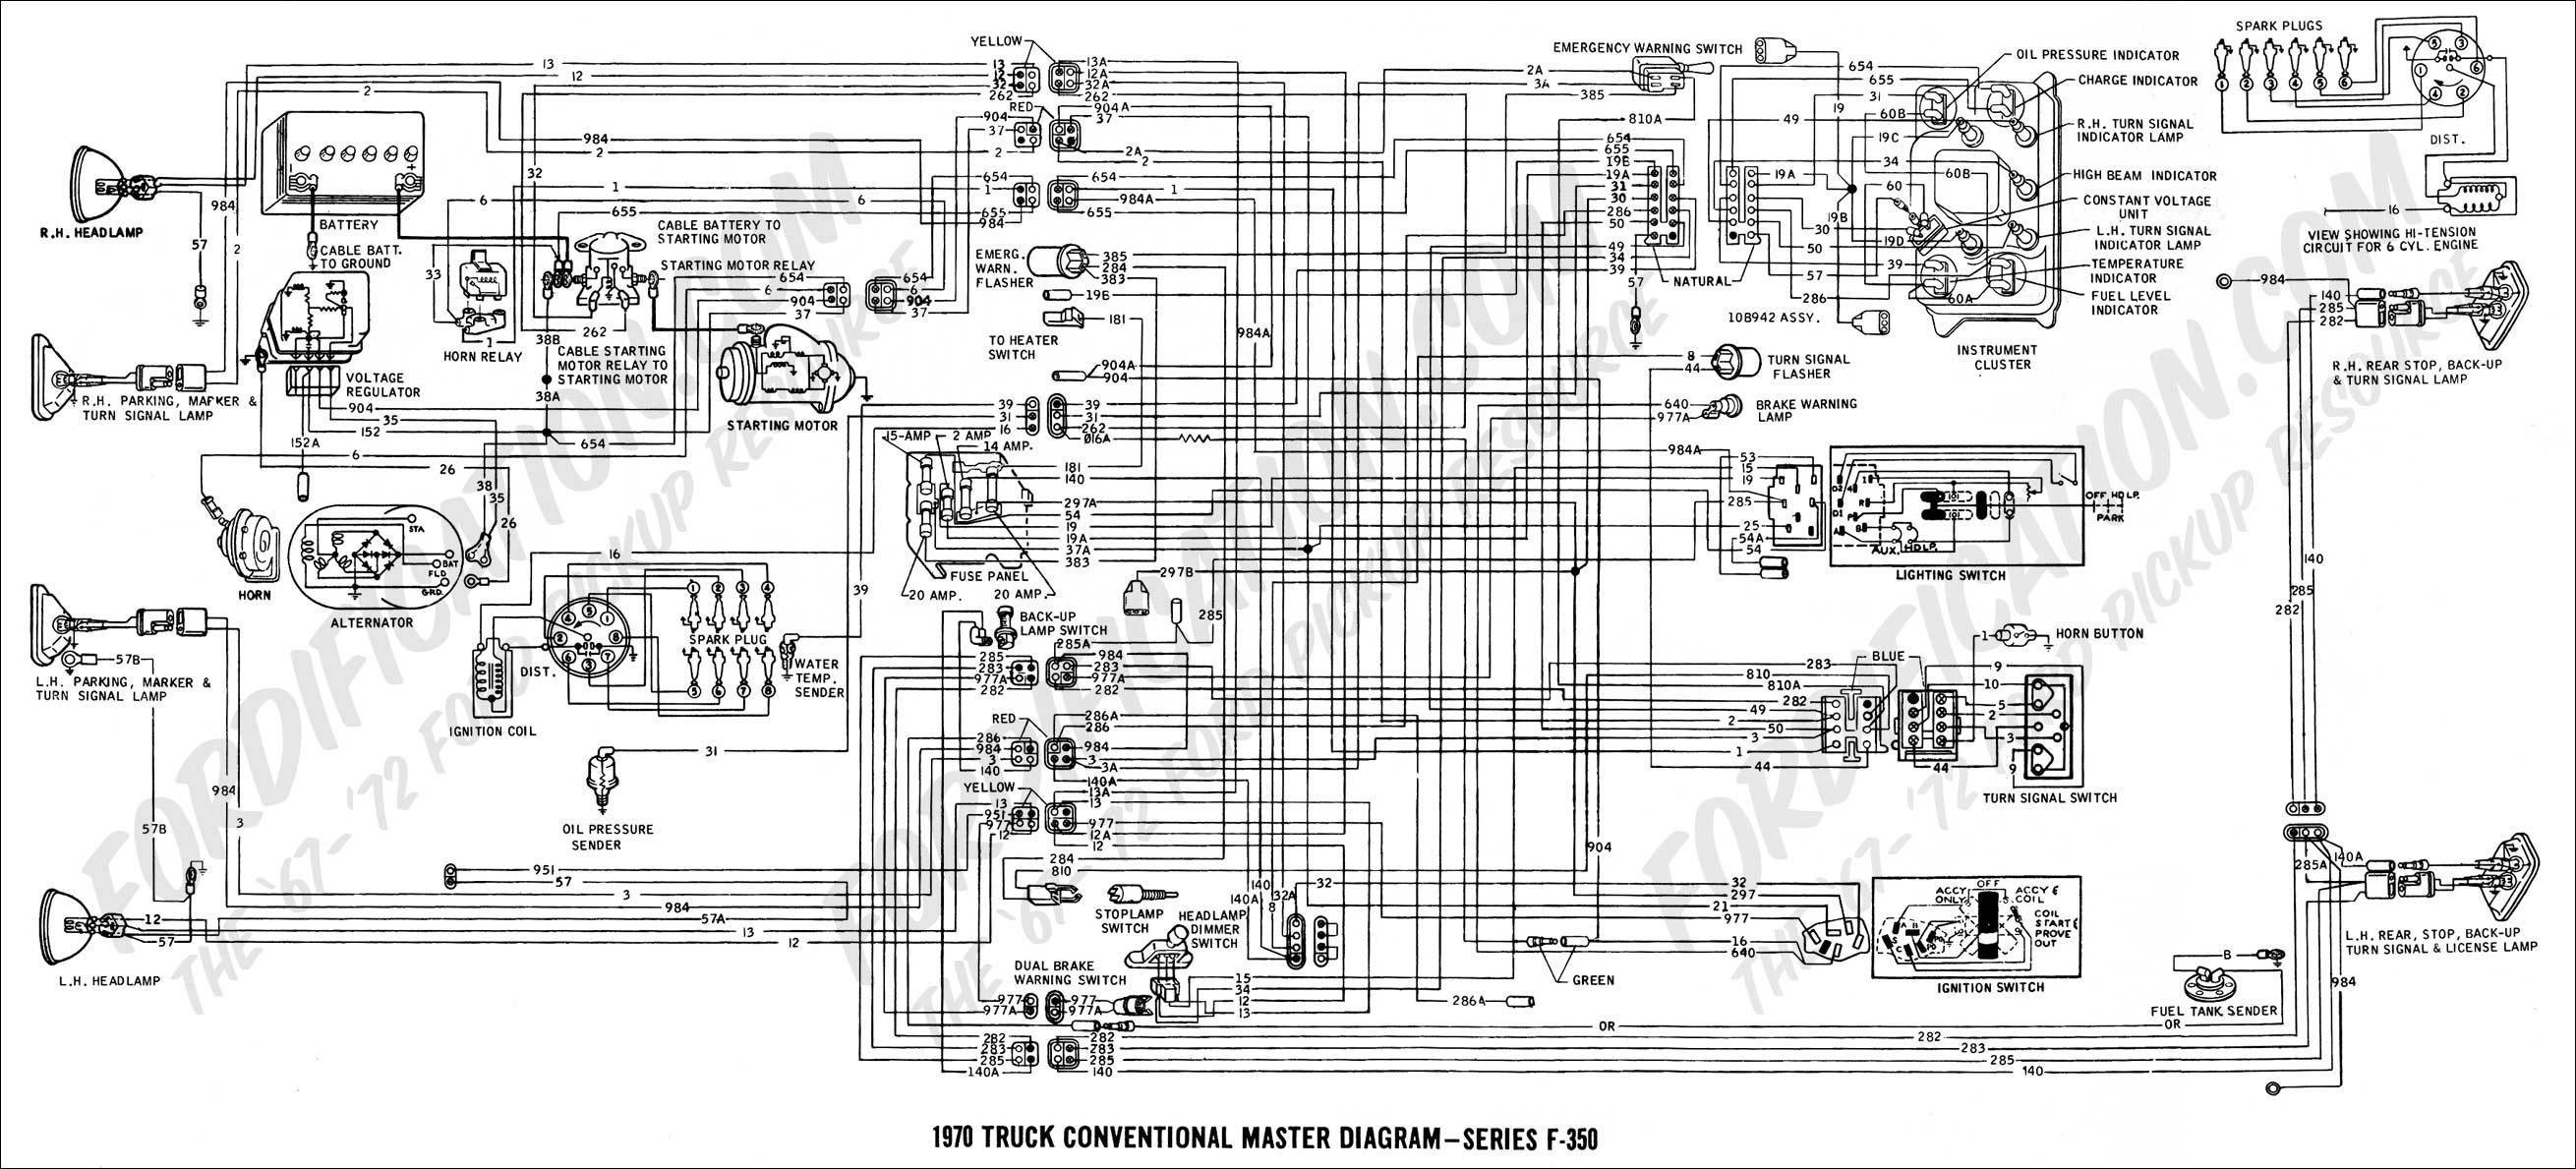 2000 Mitsubishi Eclipse Wiring Diagram 2003 ford F250 Wiring Diagram Line Creating Materials Linear Load Of 2000 Mitsubishi Eclipse Wiring Diagram